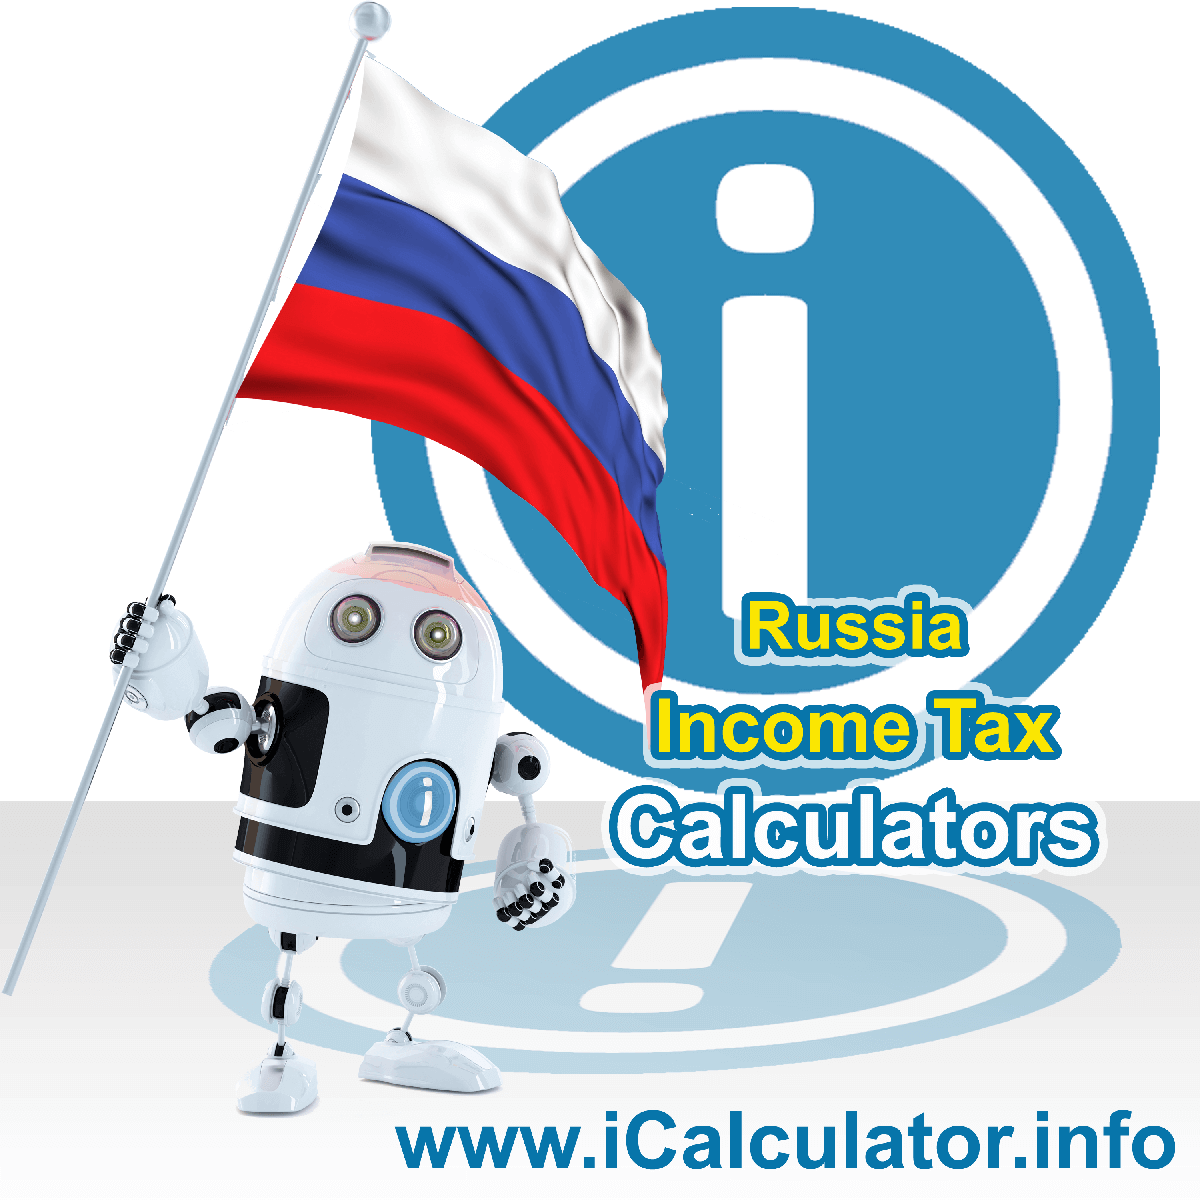 Russia Income Tax Calculator. This image shows a new employer in Russia calculating the annual payroll costs based on multiple payroll payments in one year in Russia using the Russia income tax calculator to understand their payroll costs in Russia in 2021